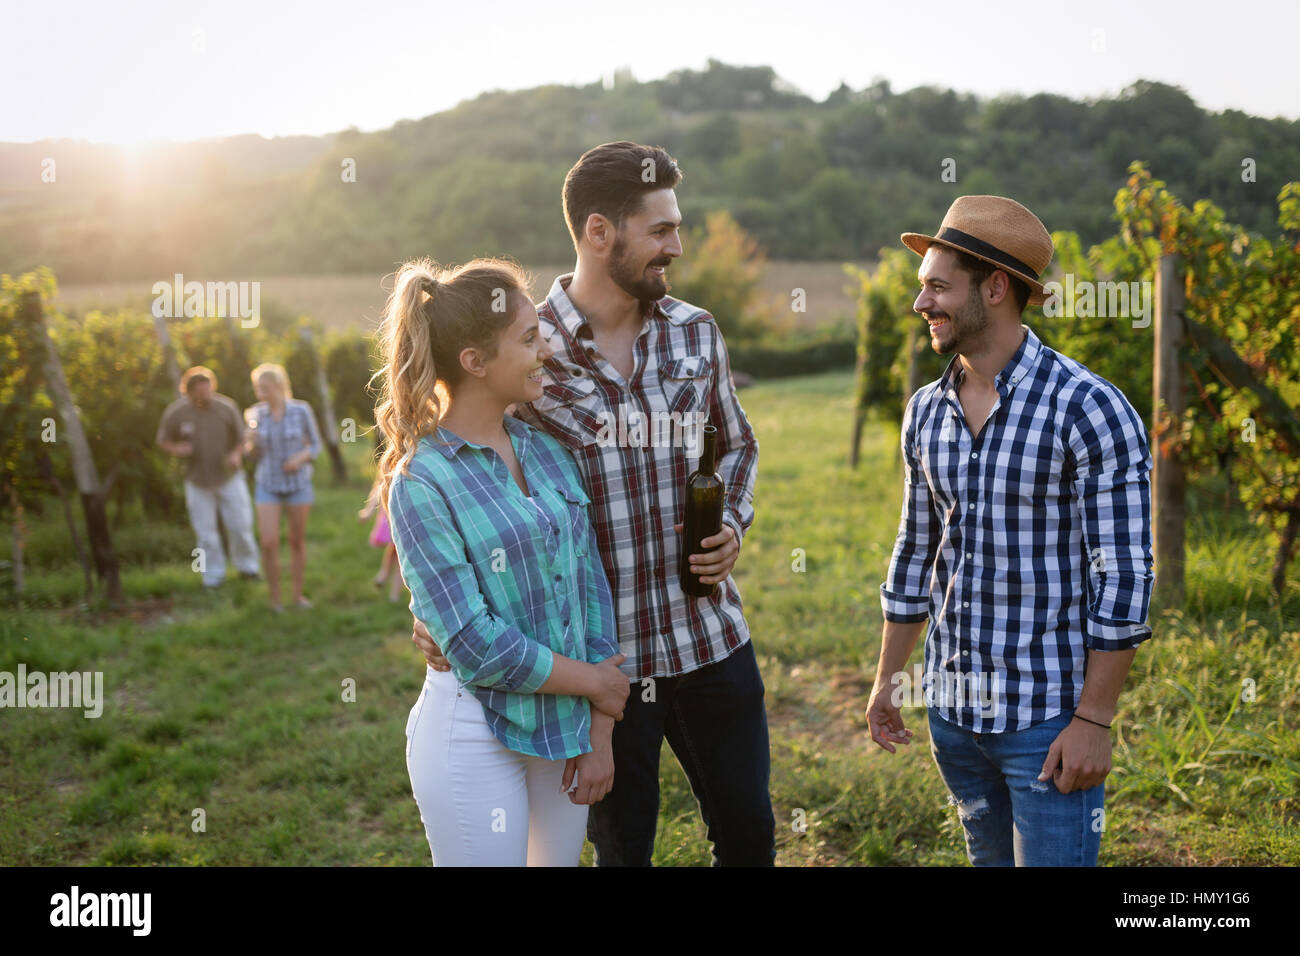 Wine grower and people in winery vineyard - Stock Image